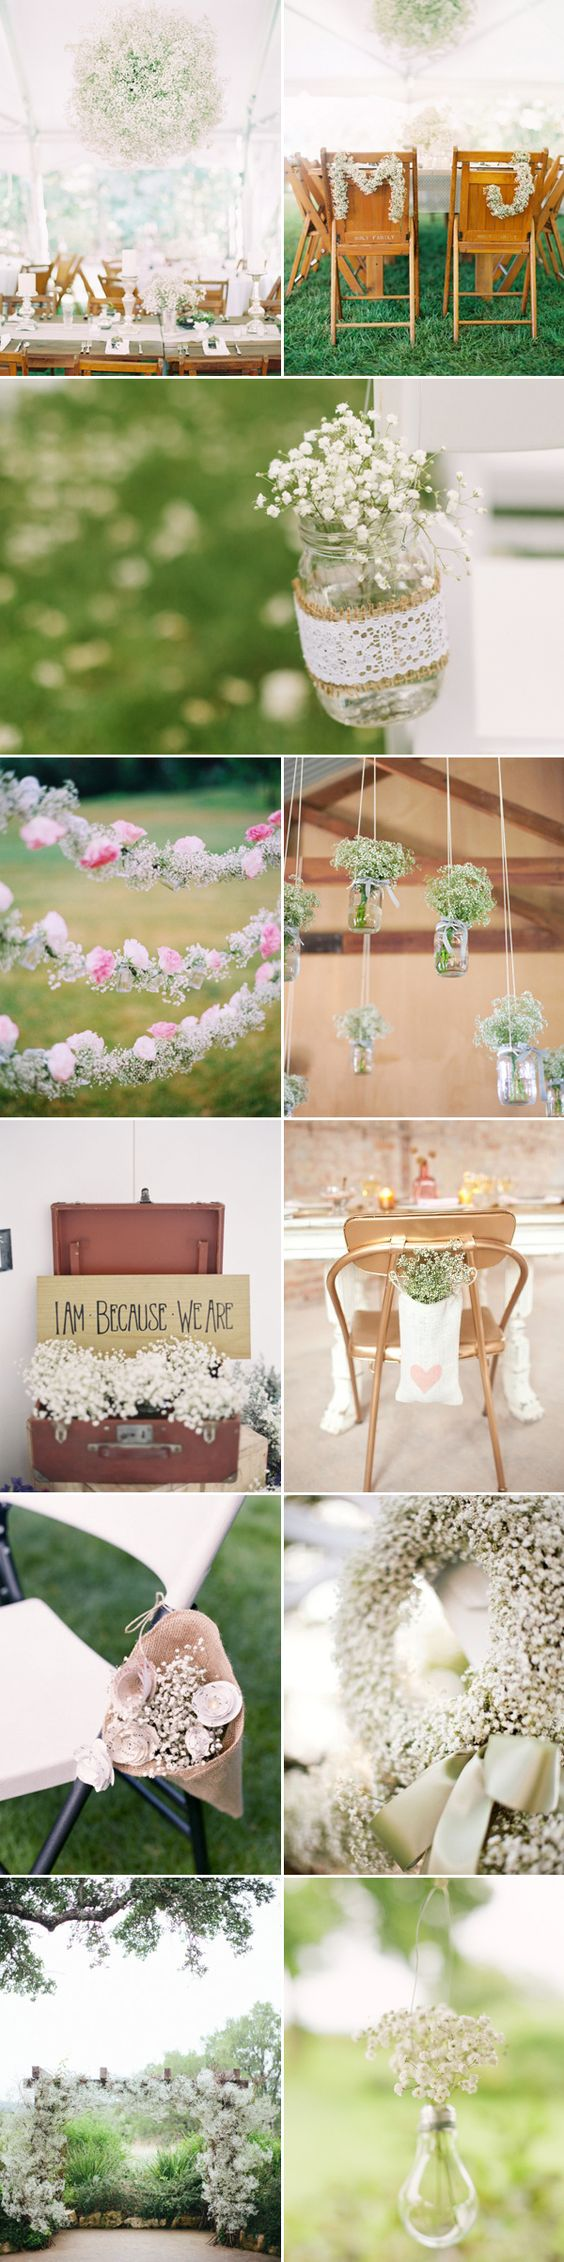 Baby's Breath Wedding Ideas: